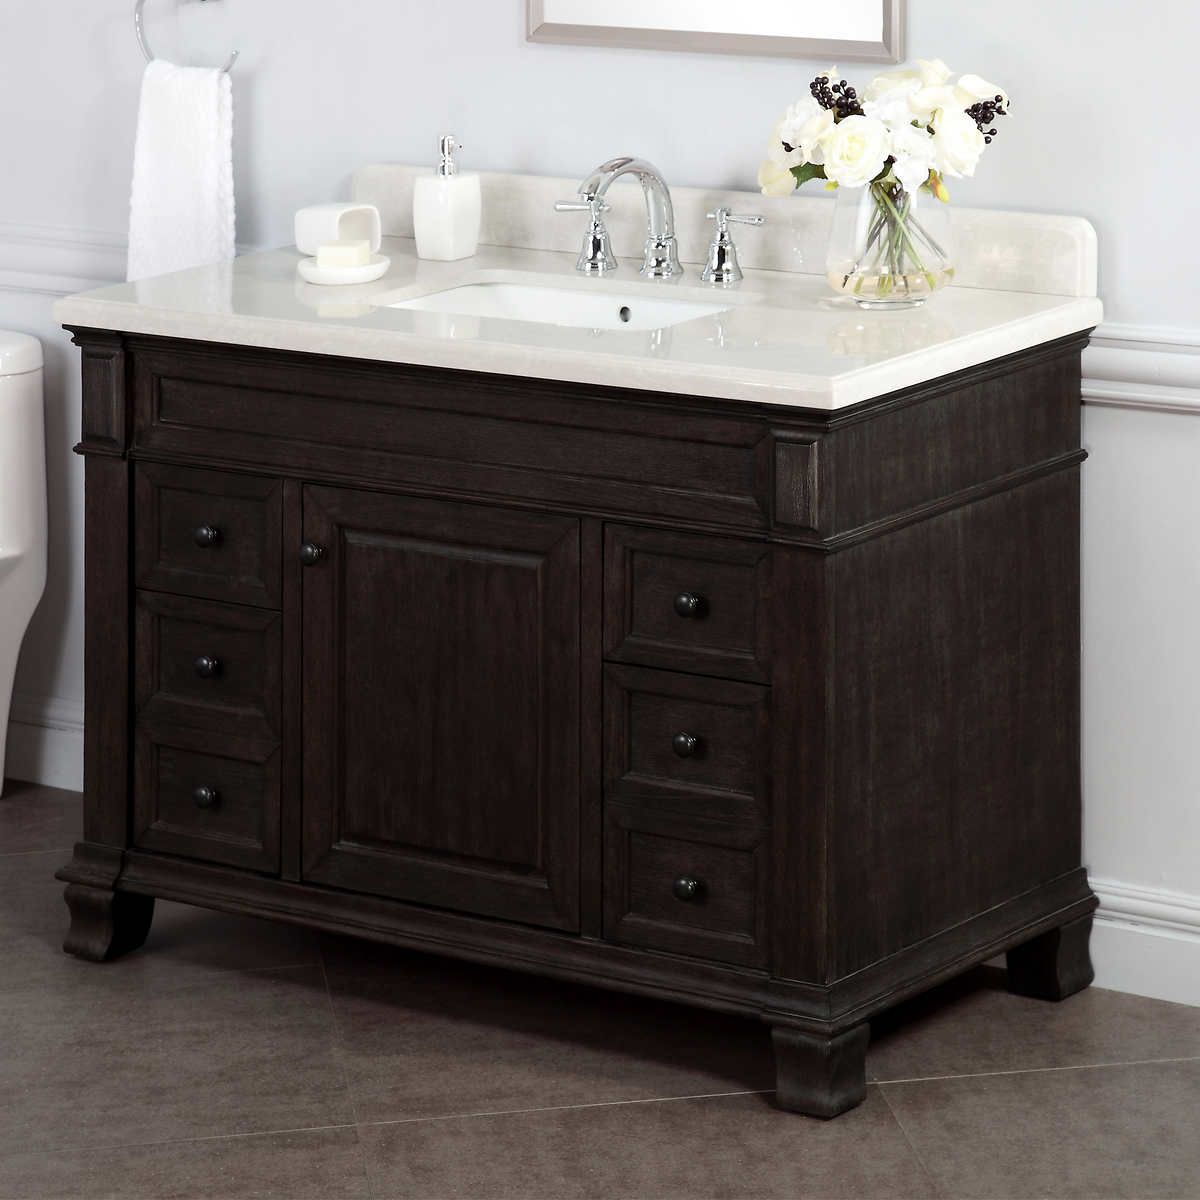 Costco 899 99 Marble Top Not Including Faucet Kingsley 48 Single Sink Vanity With Alpine Mist Countertop